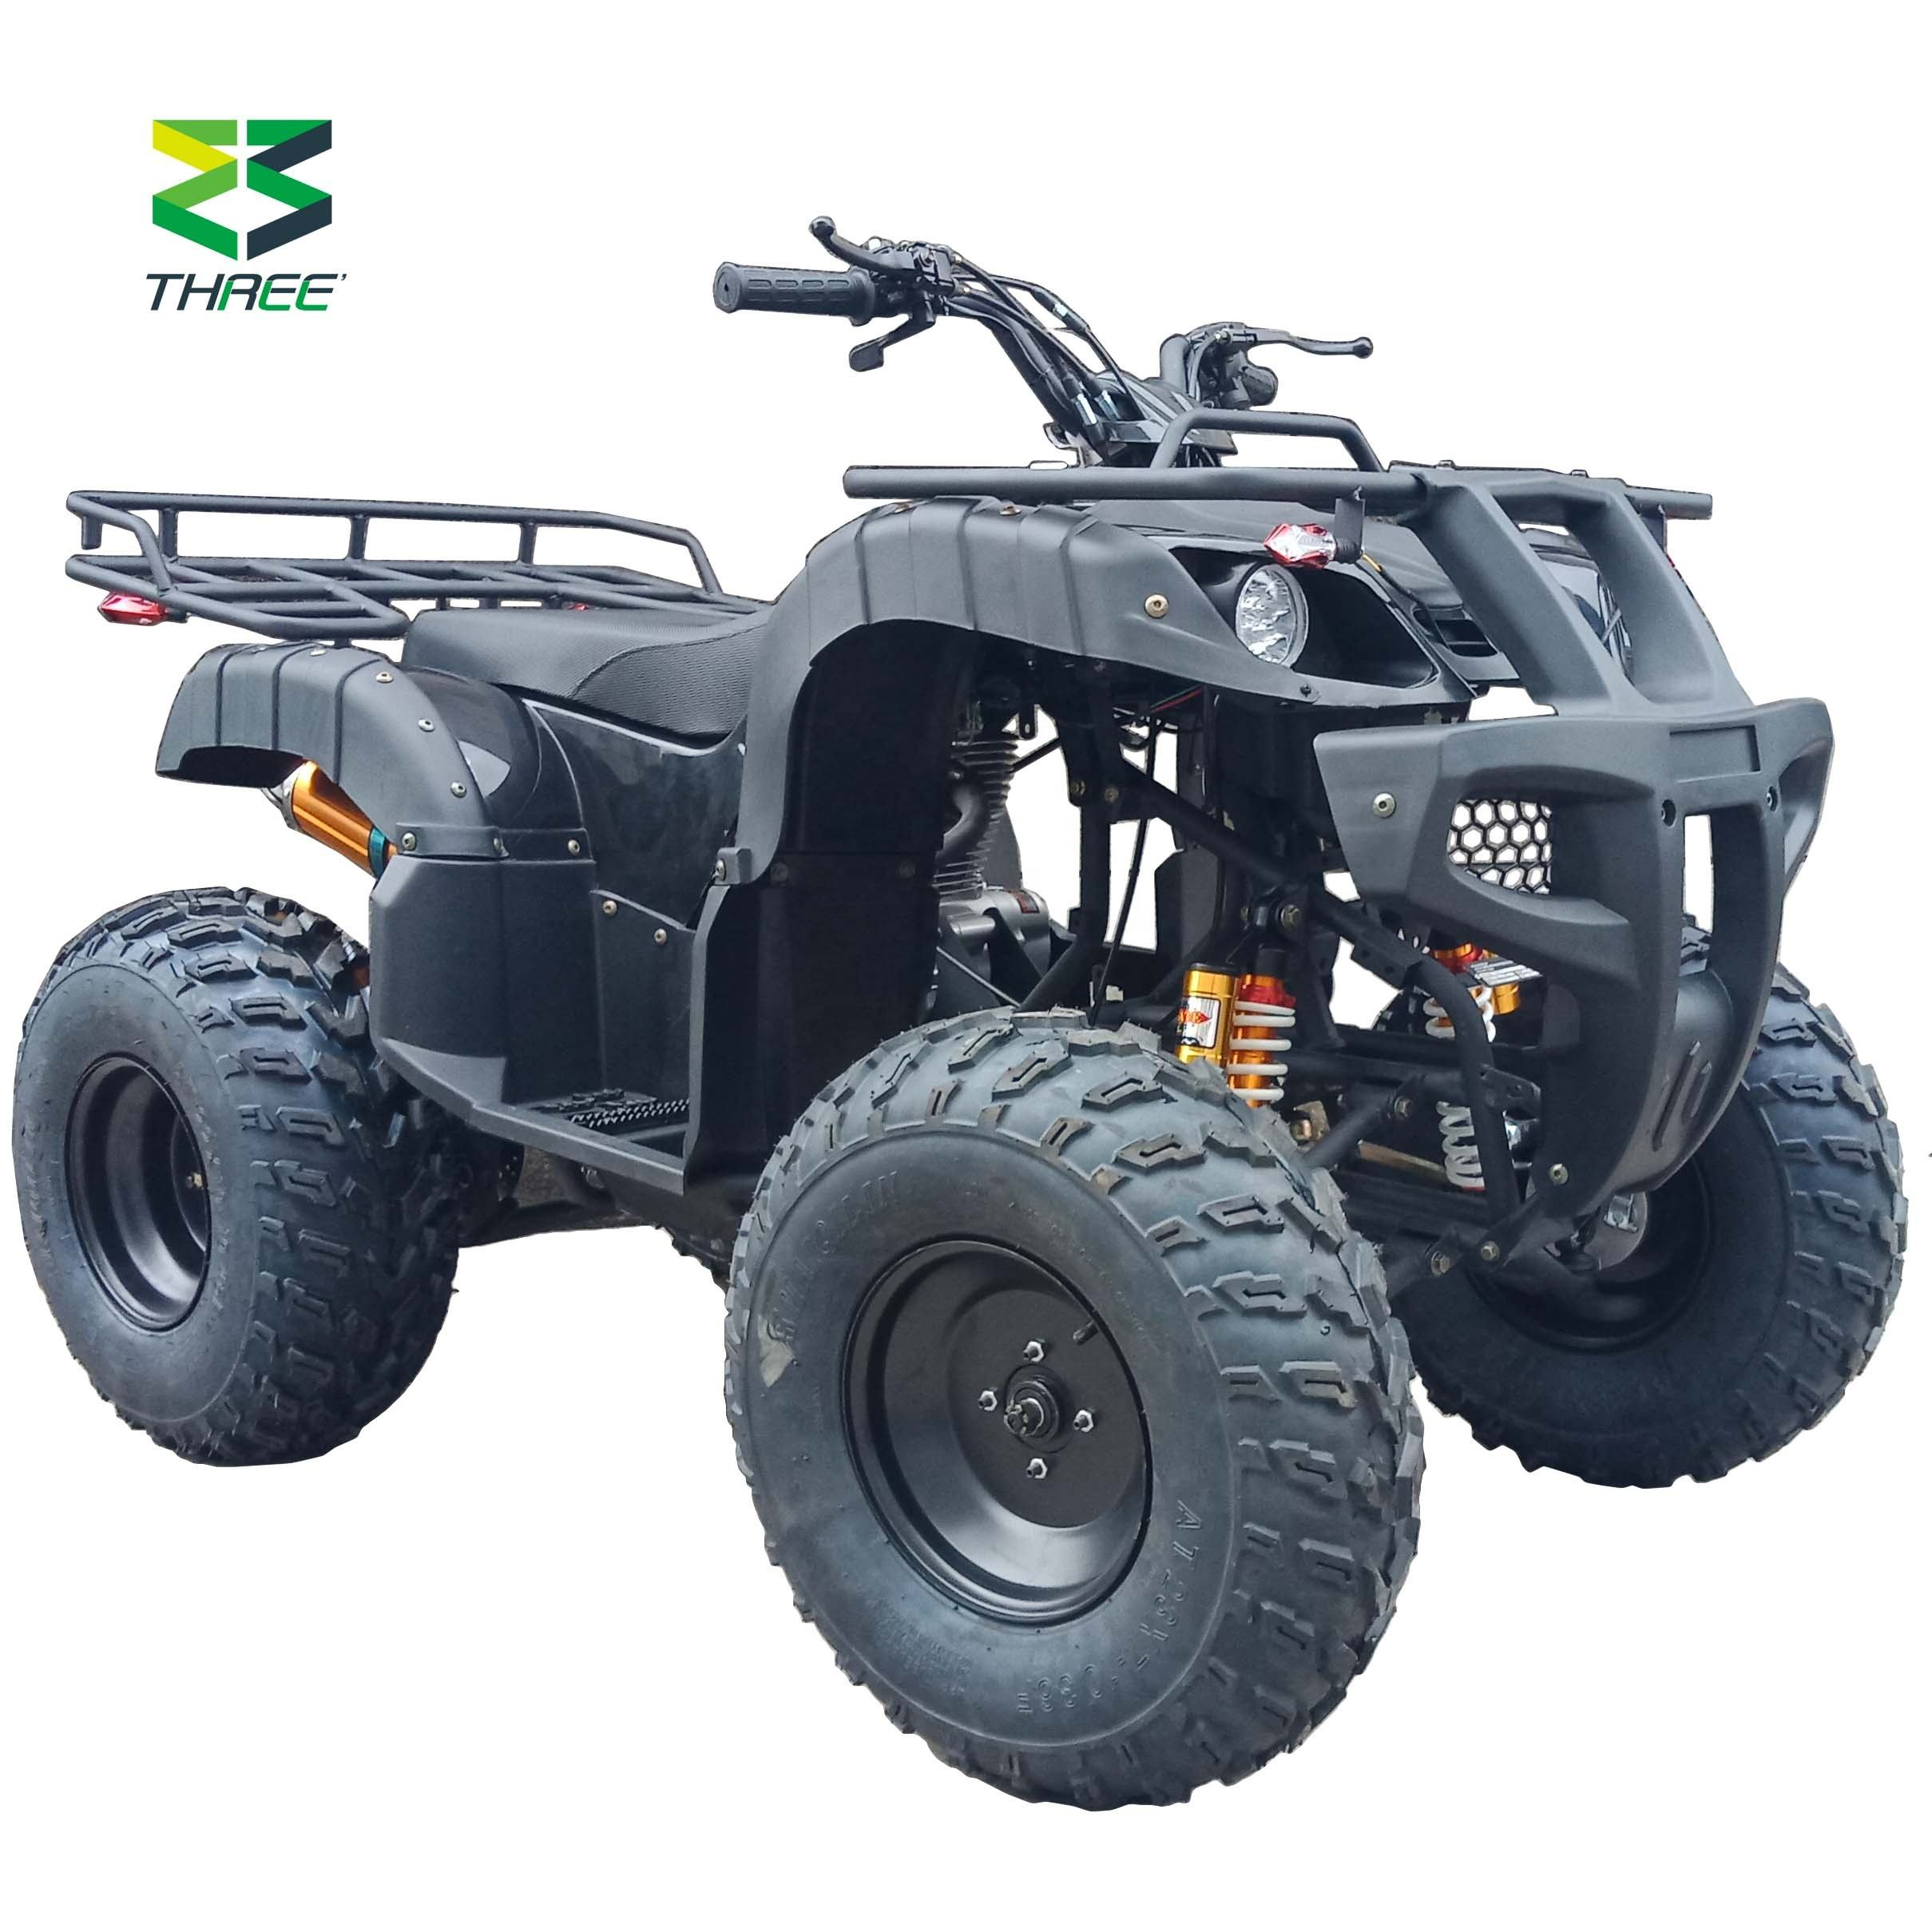 new 250cc 4 stroke street legal ATV for adults made in china